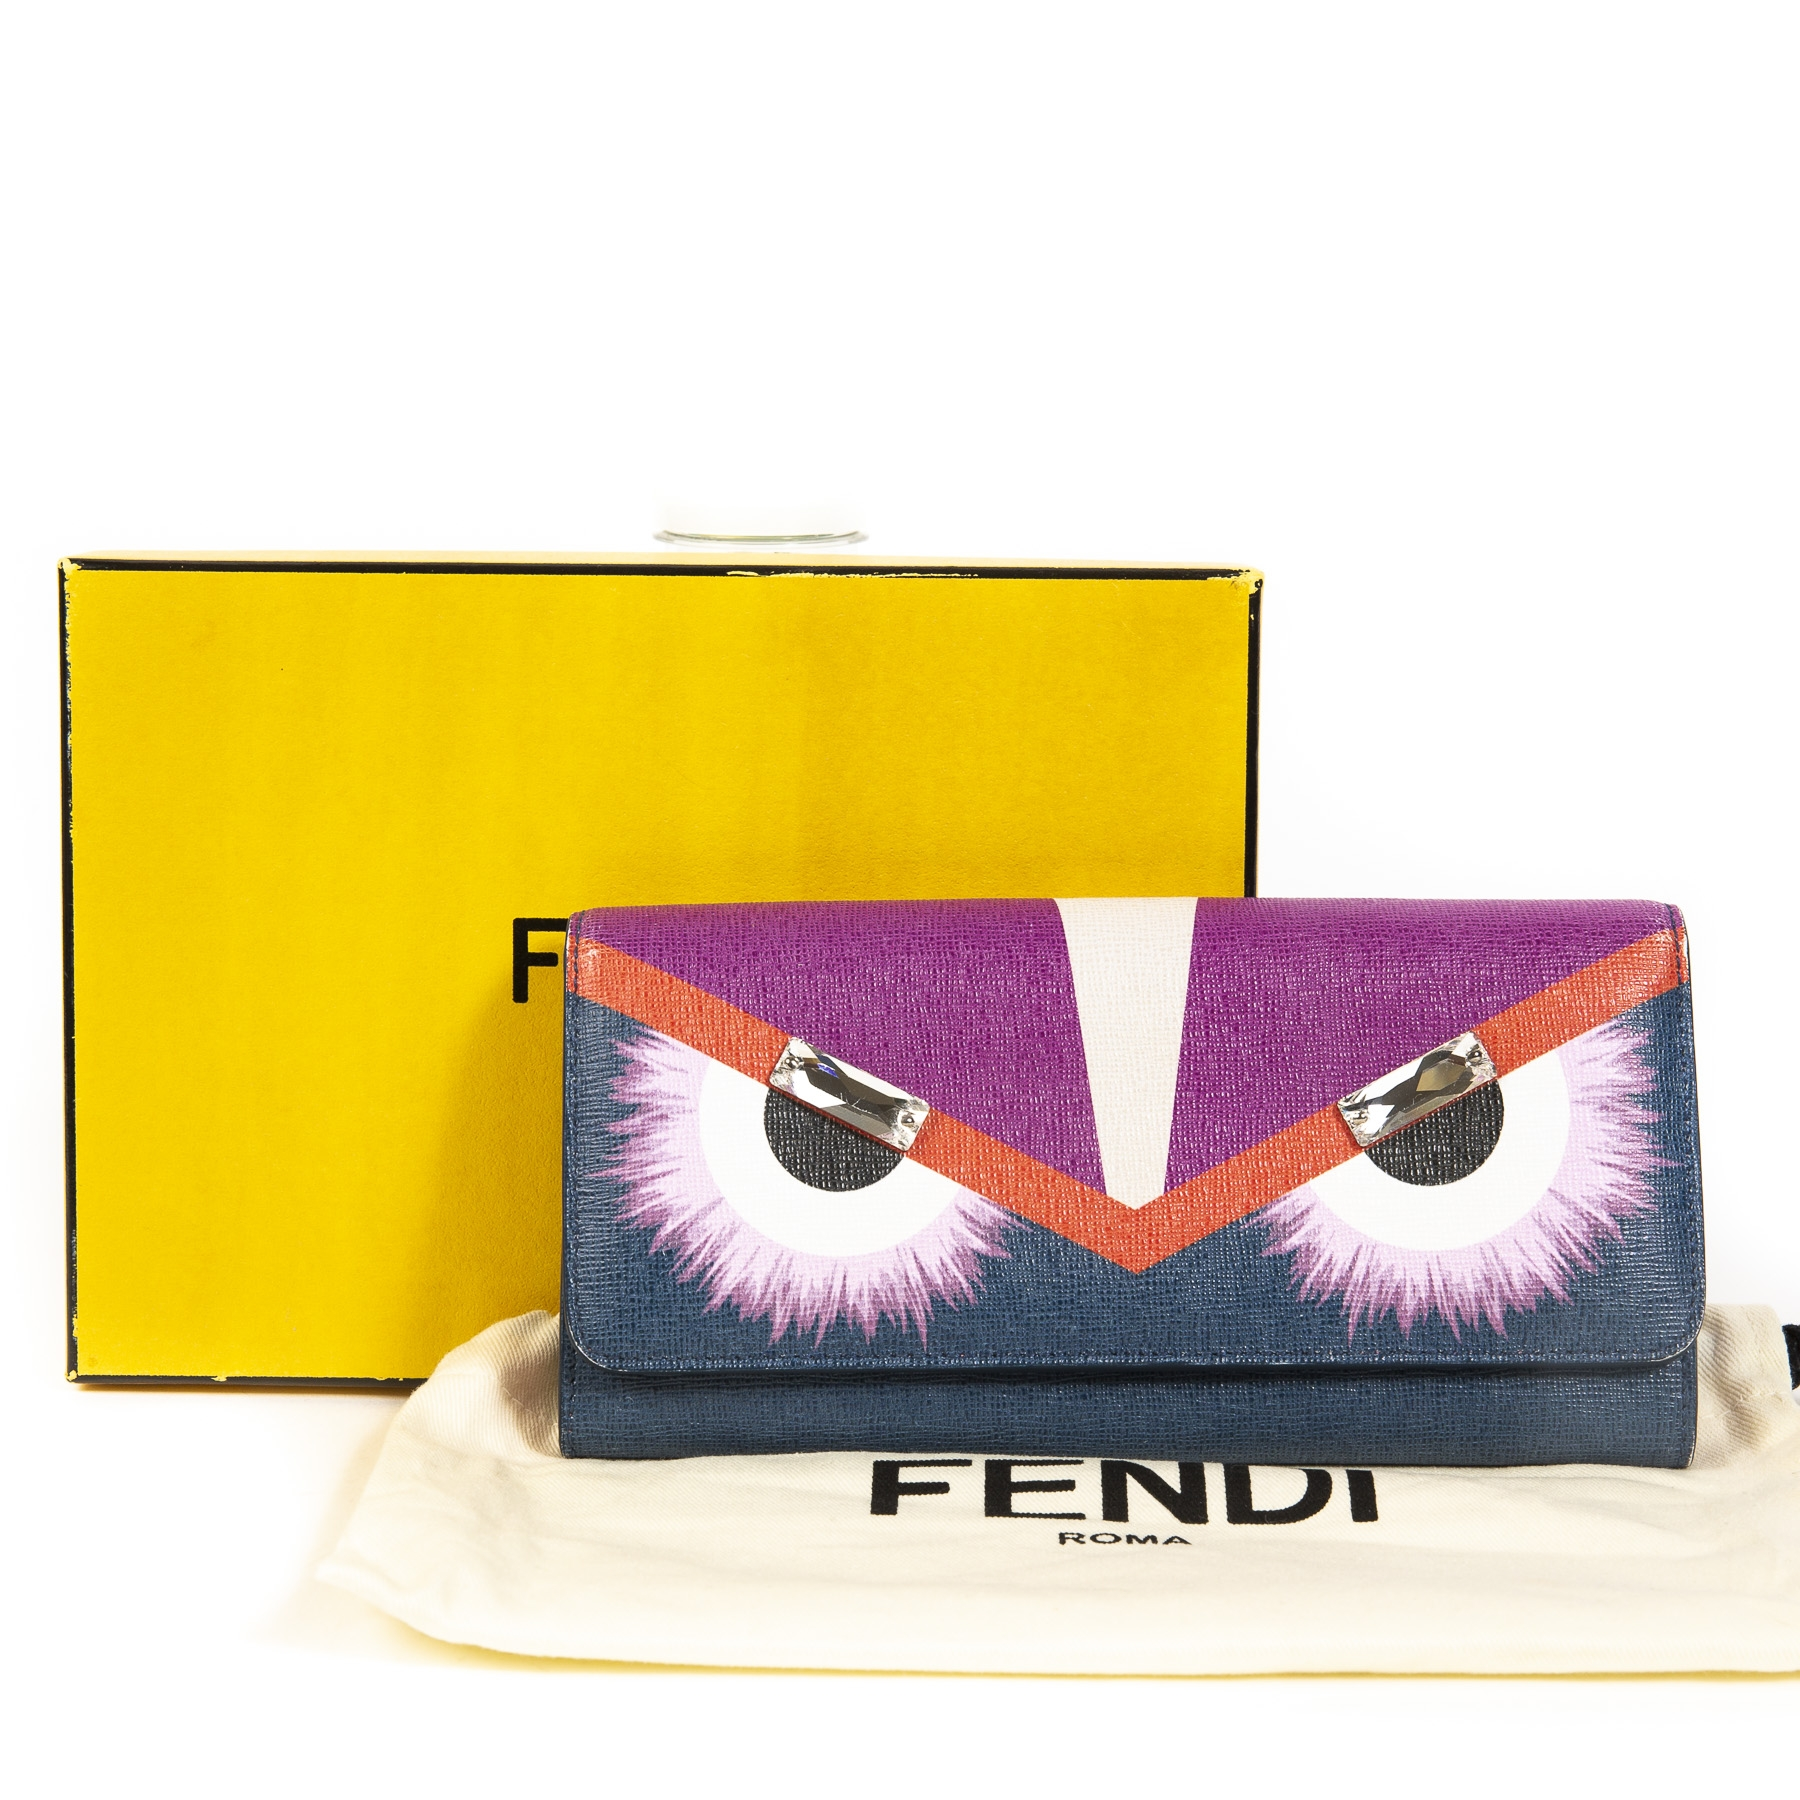 Buy this authentic second-hand vintage Fendi Continental Monster Wallet at online webshop LabelLOV